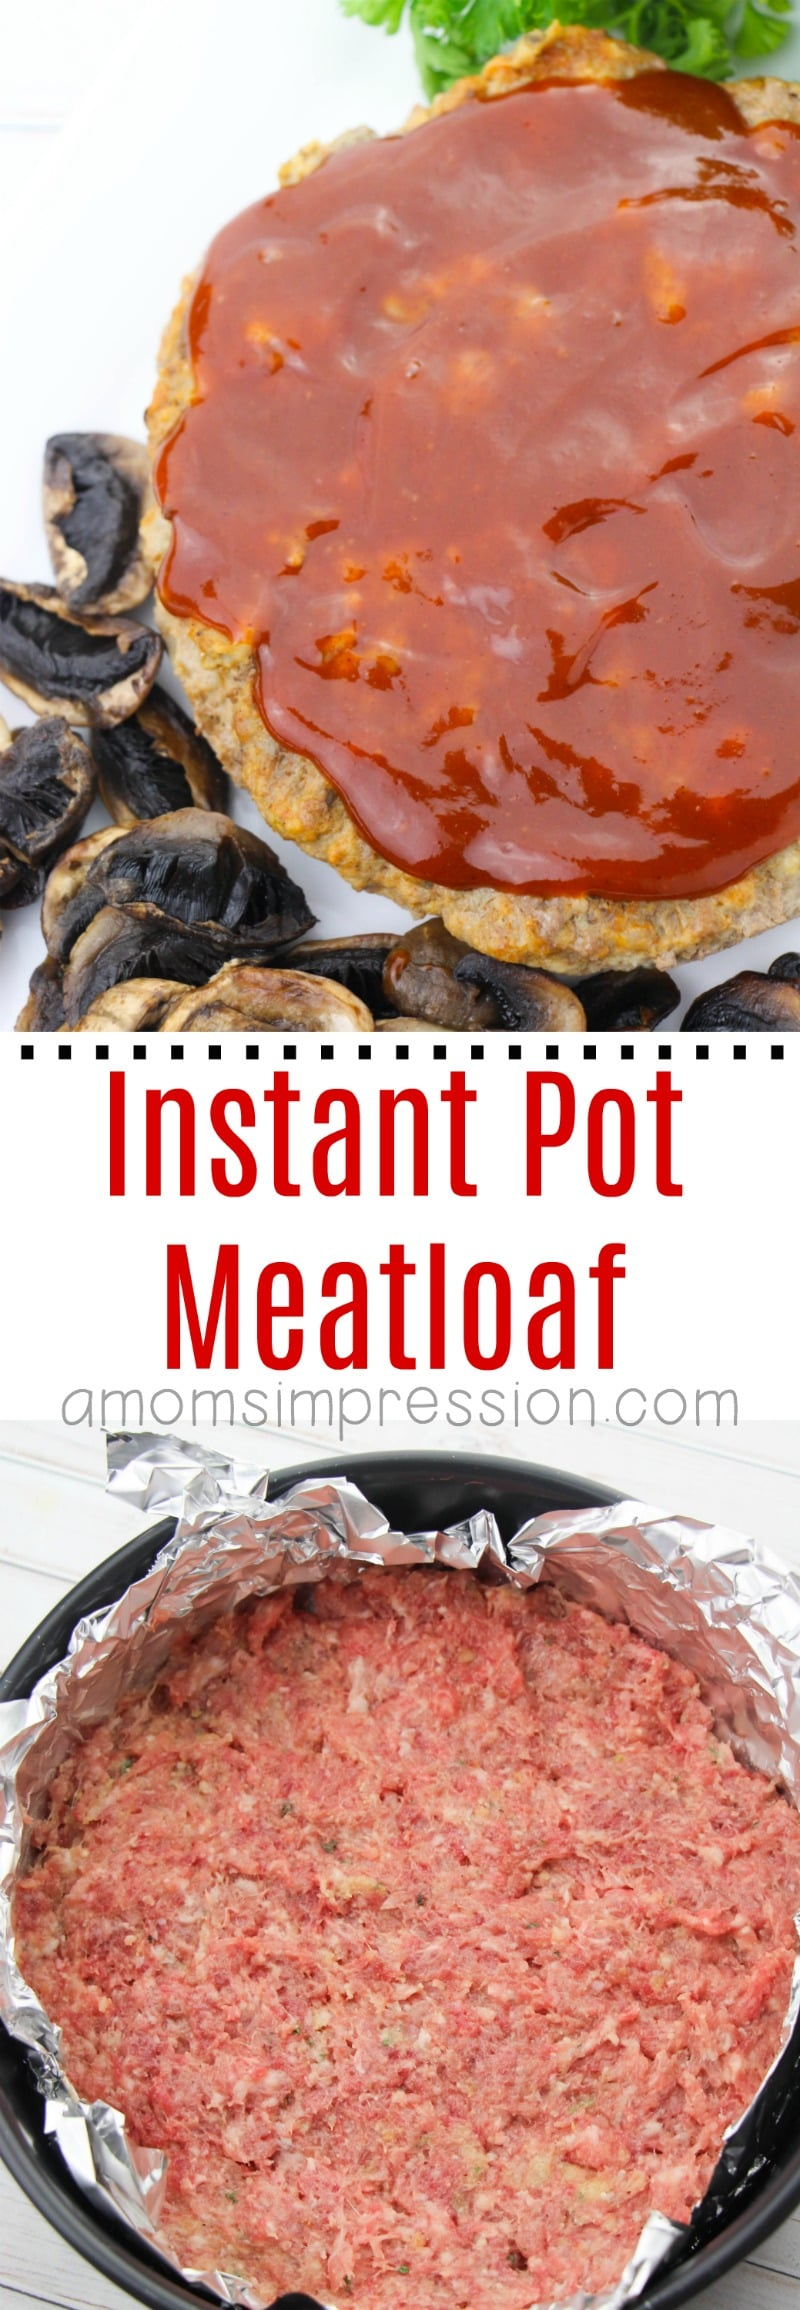 Instant Pot Meatloaf is so easy and can be made in less than 45 minutes. This recipe makes the best, most moist meatloaf and your family is going to ask for it over and over again.